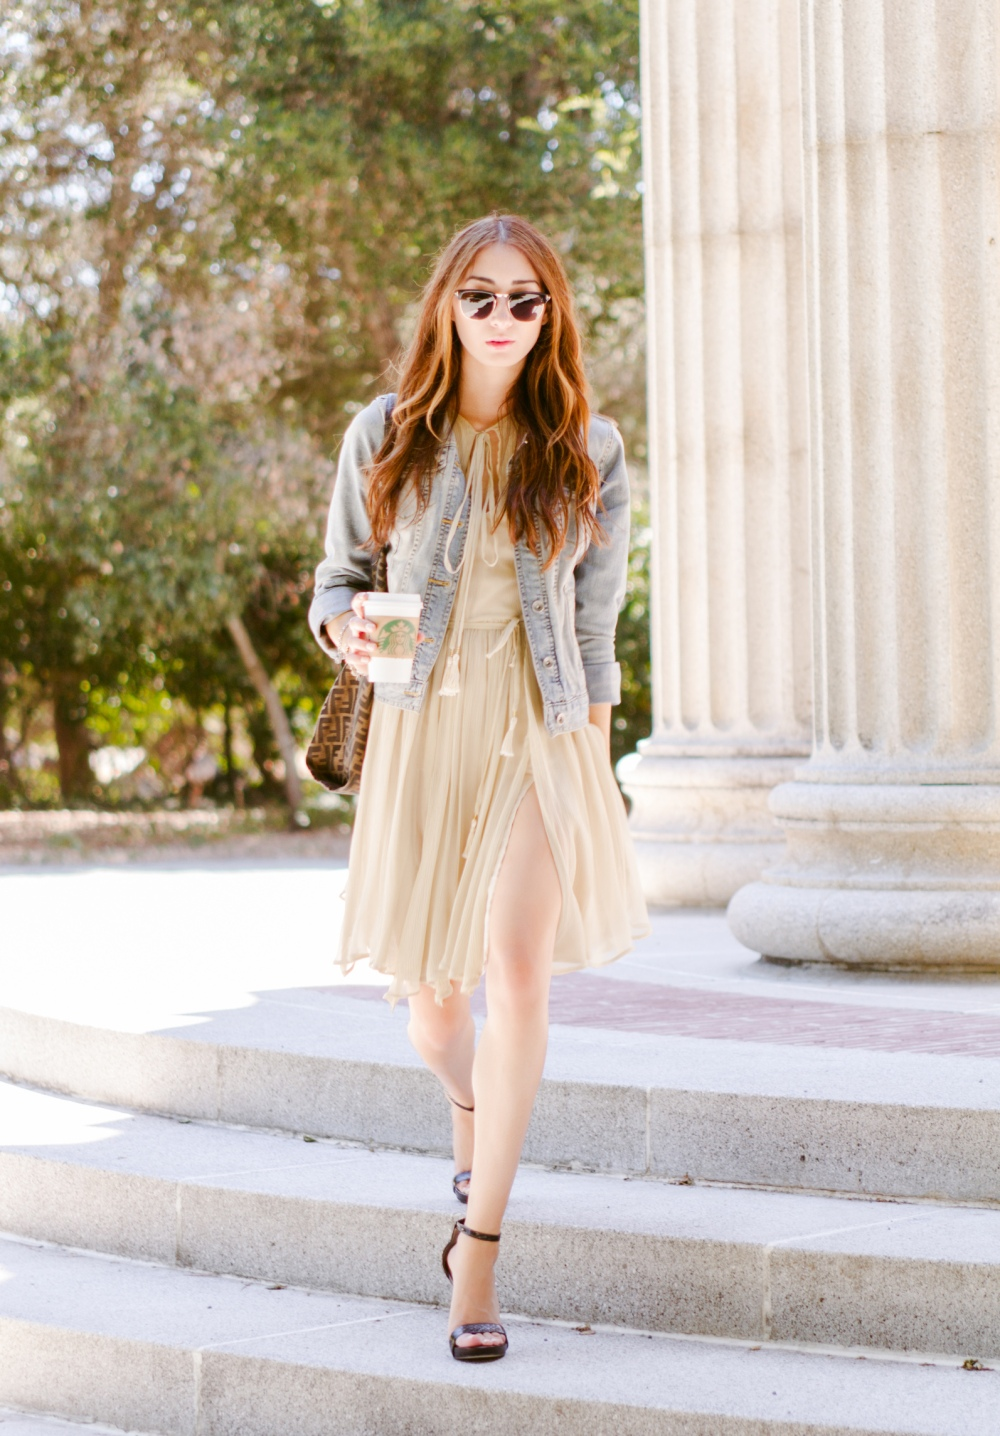 Easy Breezy in Alyssa Nicole Dress and Tom Ford Sunglasses